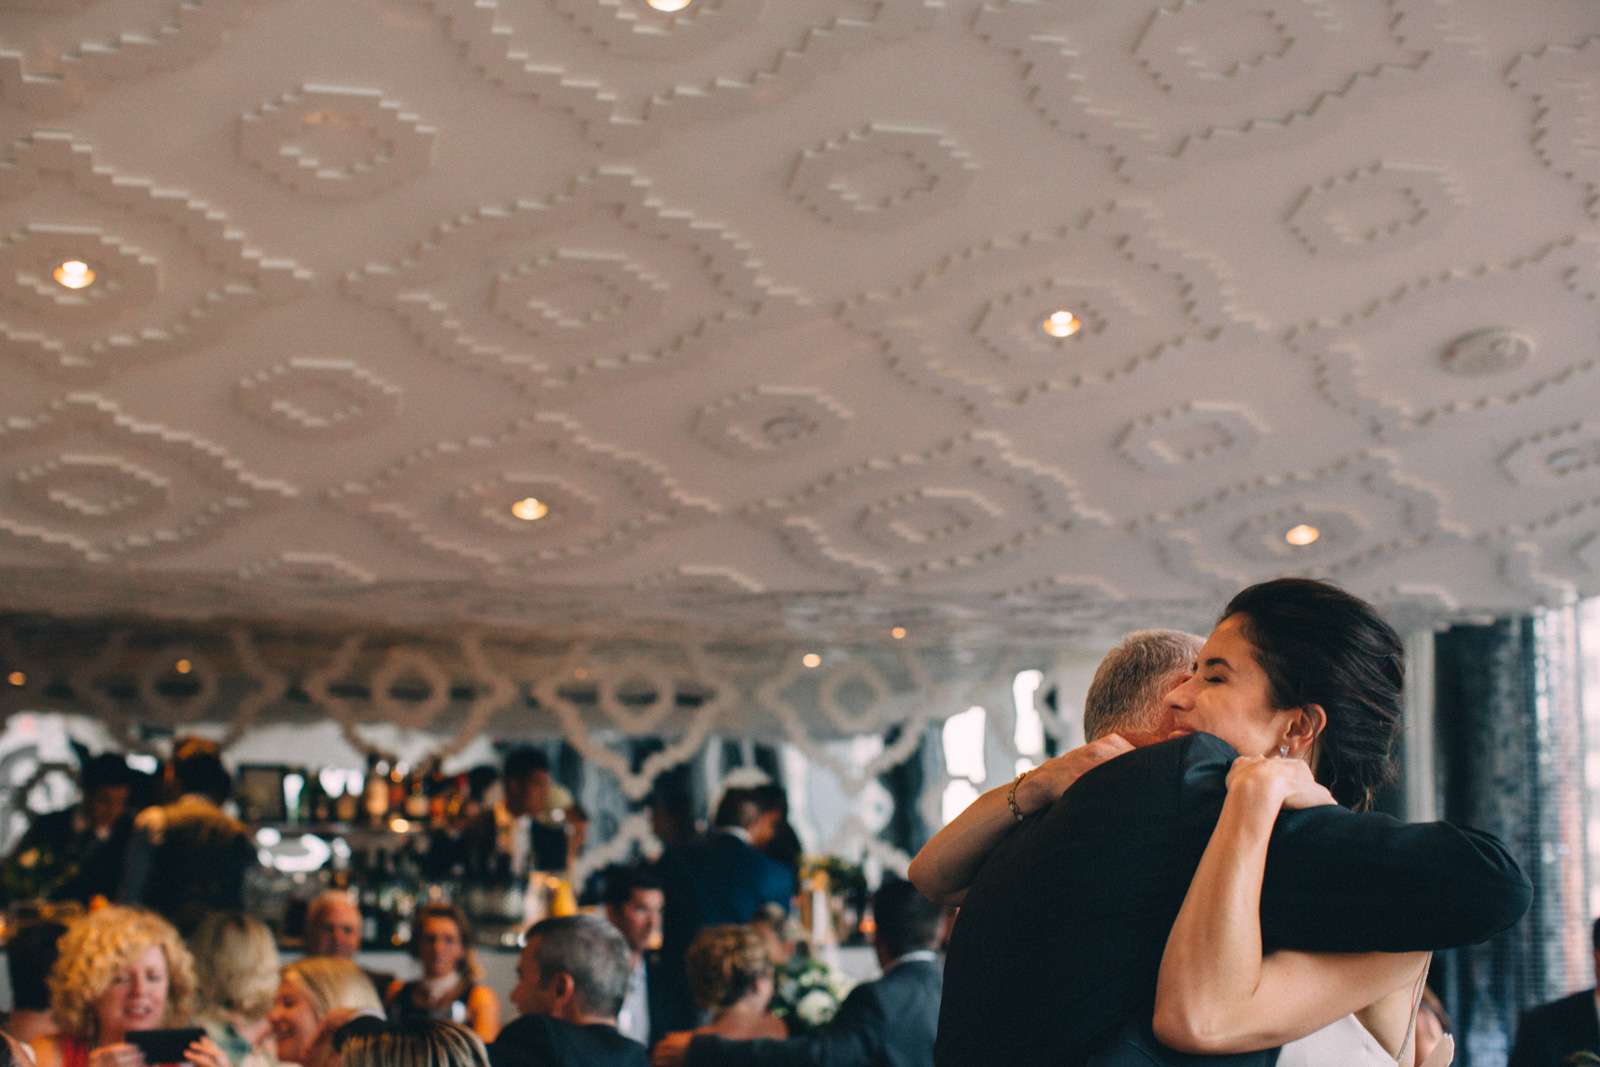 Malaparte-wedding-photography-Toronto-by-Sam-Wong-of-Artanis-Collective_69.jpg